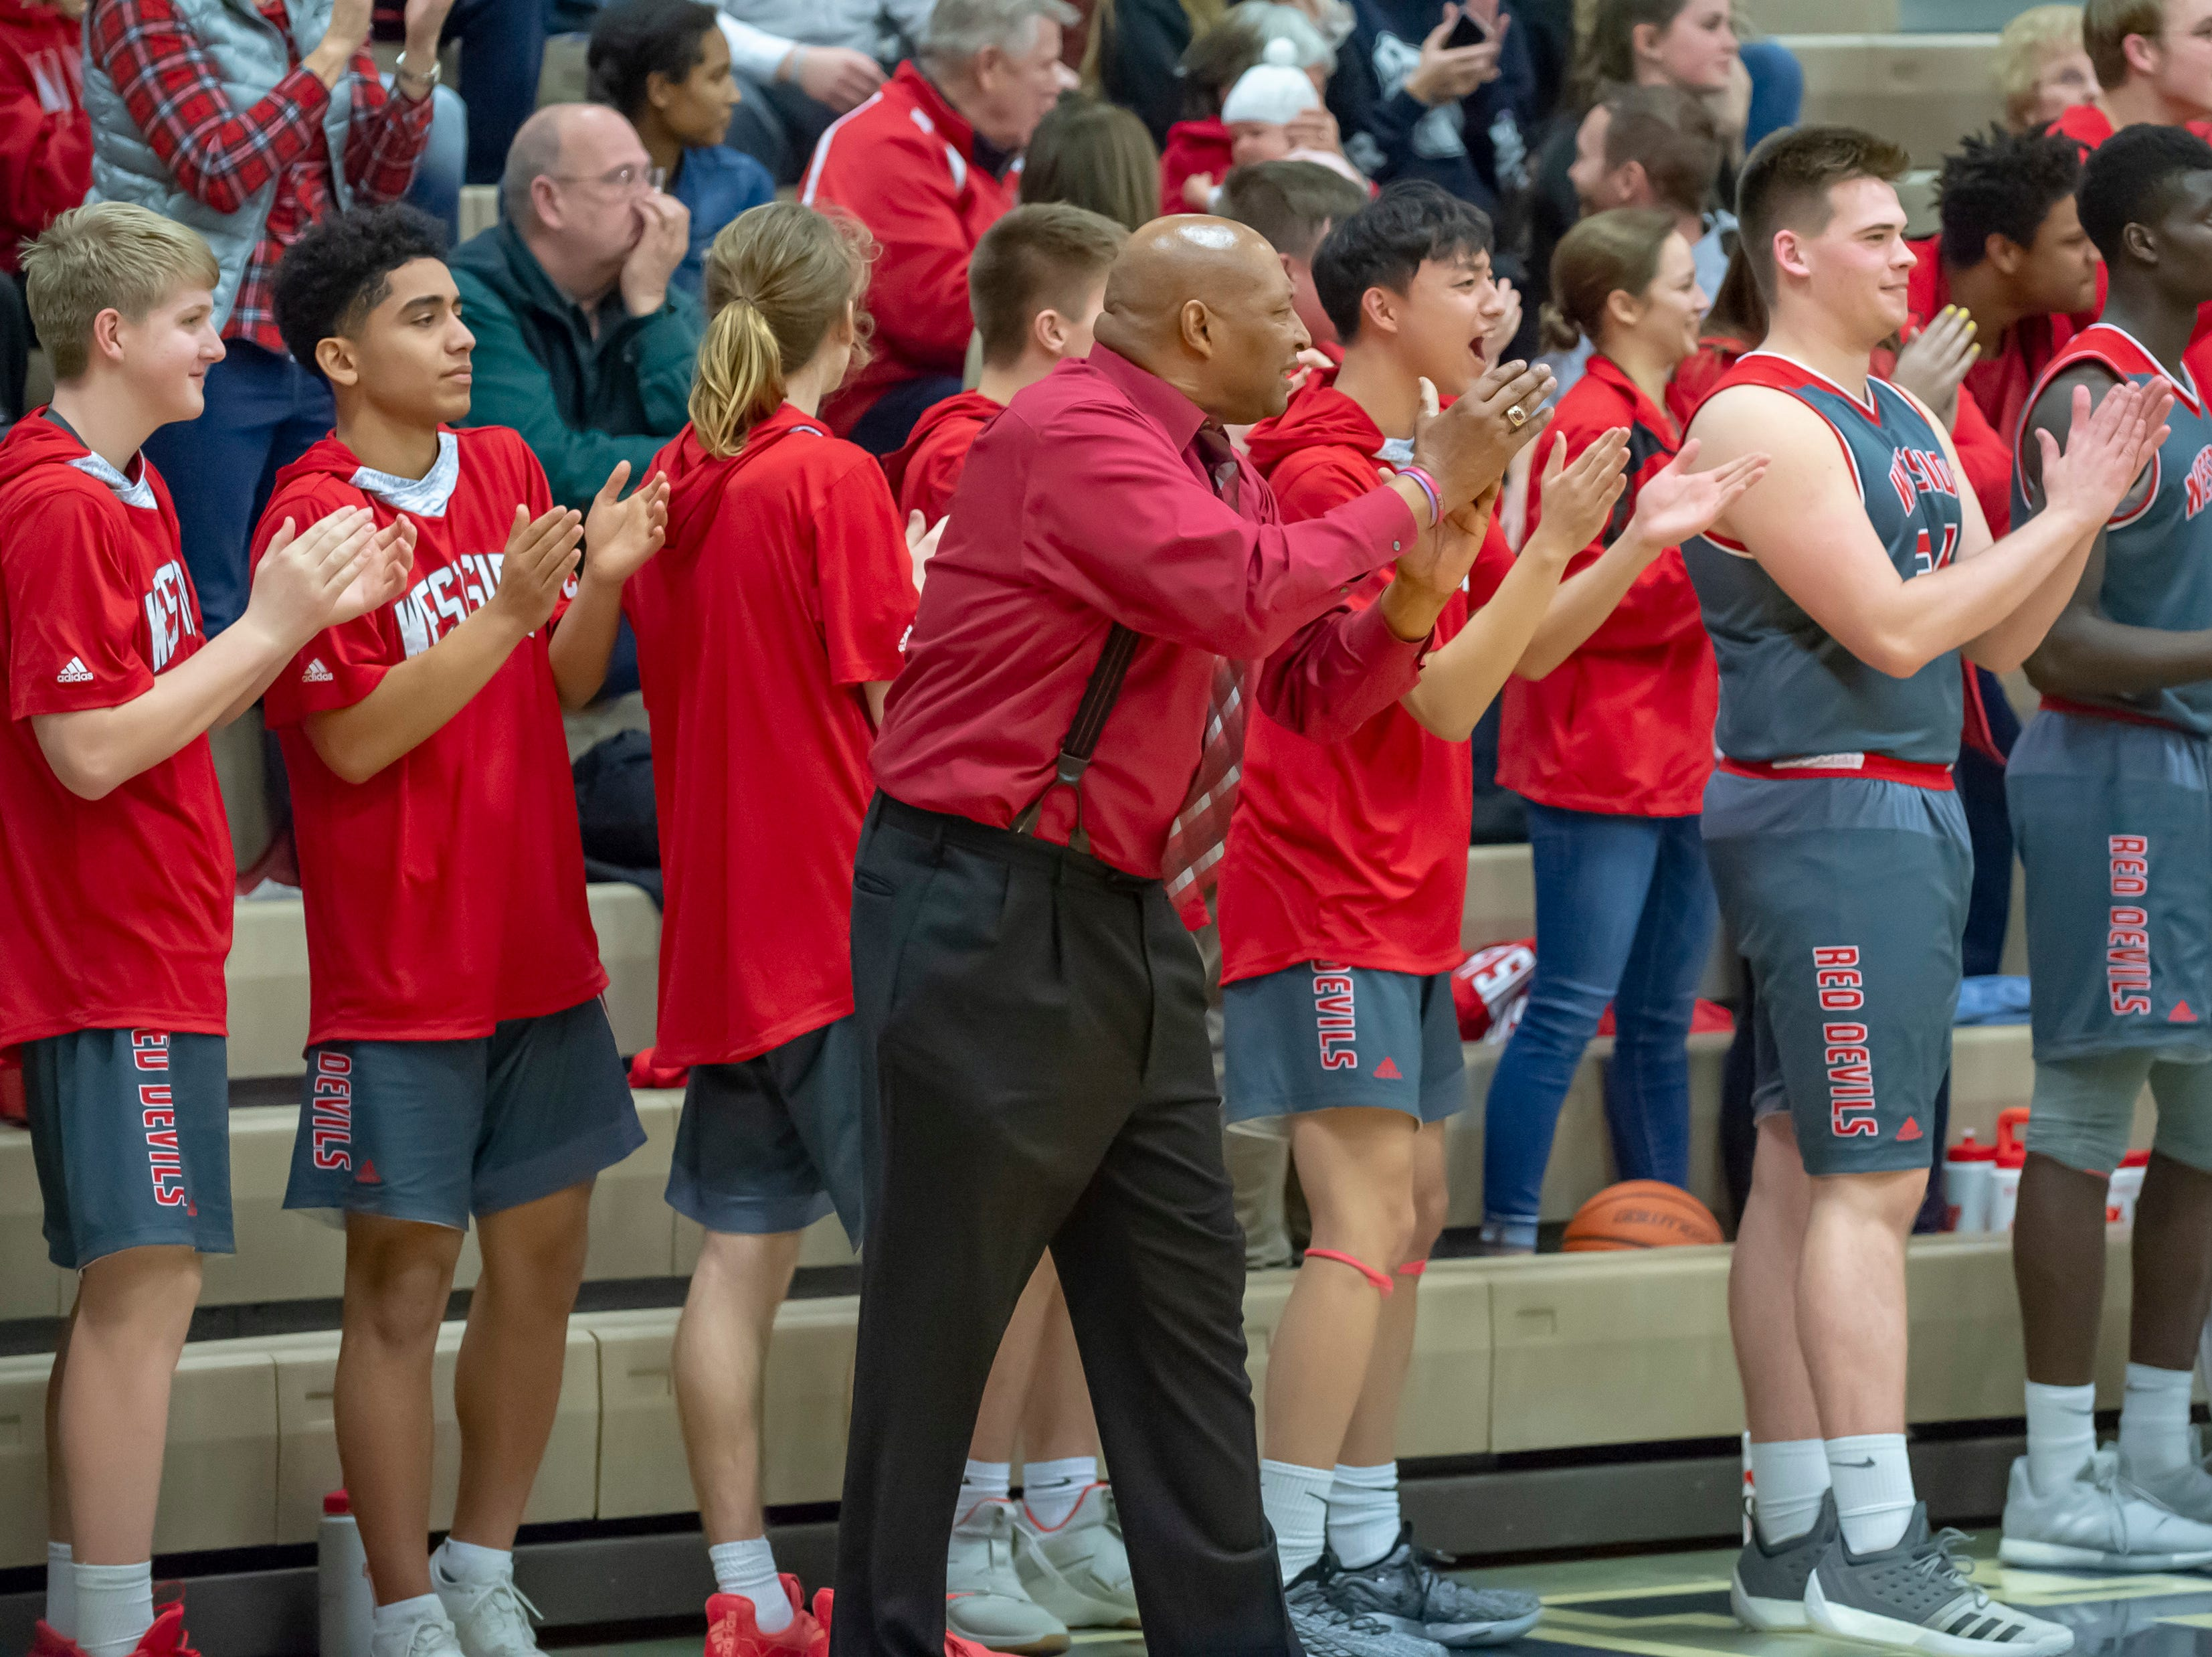 Action from the West Lafayette at Central Catholic boys basketball rivalry game on 2/8/19